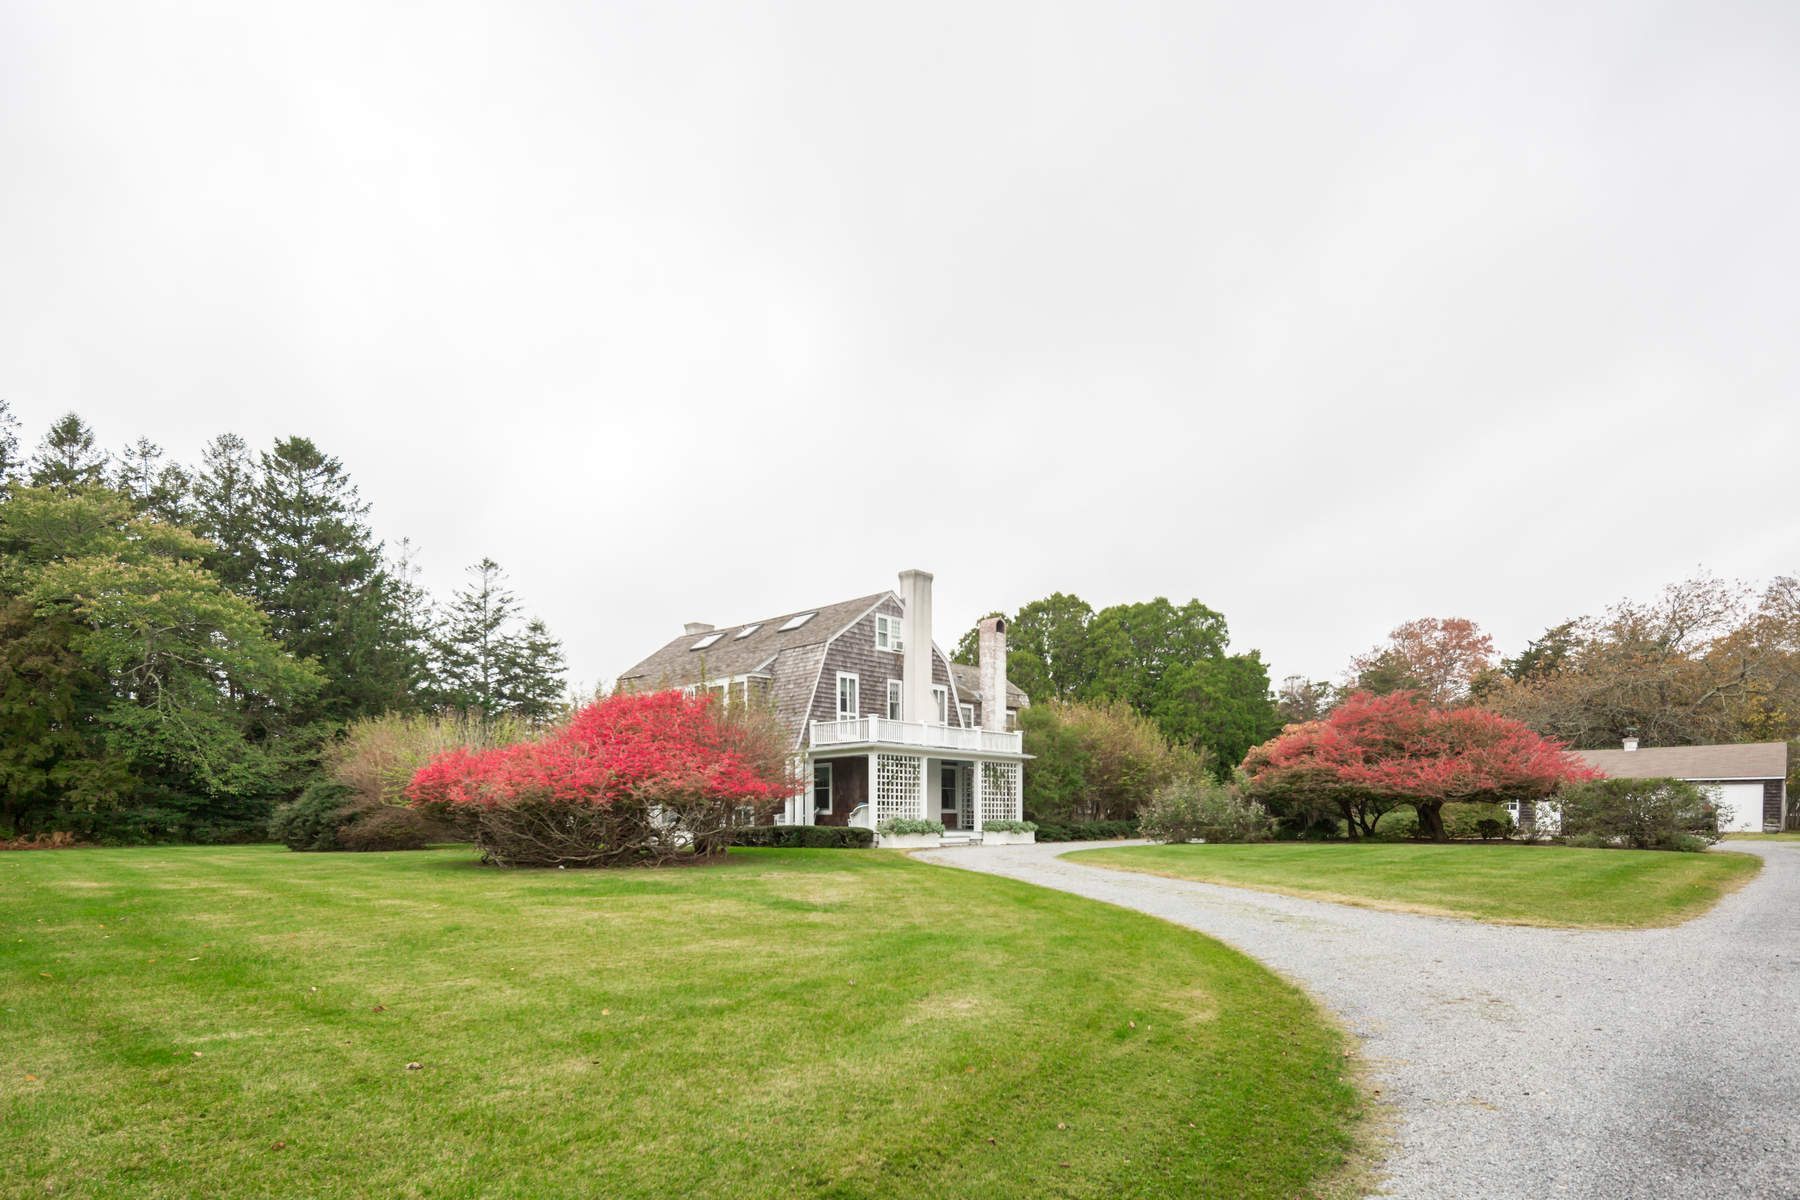 Single Family Home for Rent at East Hampton Original on Further Lane East Hampton, New York 11937 United States